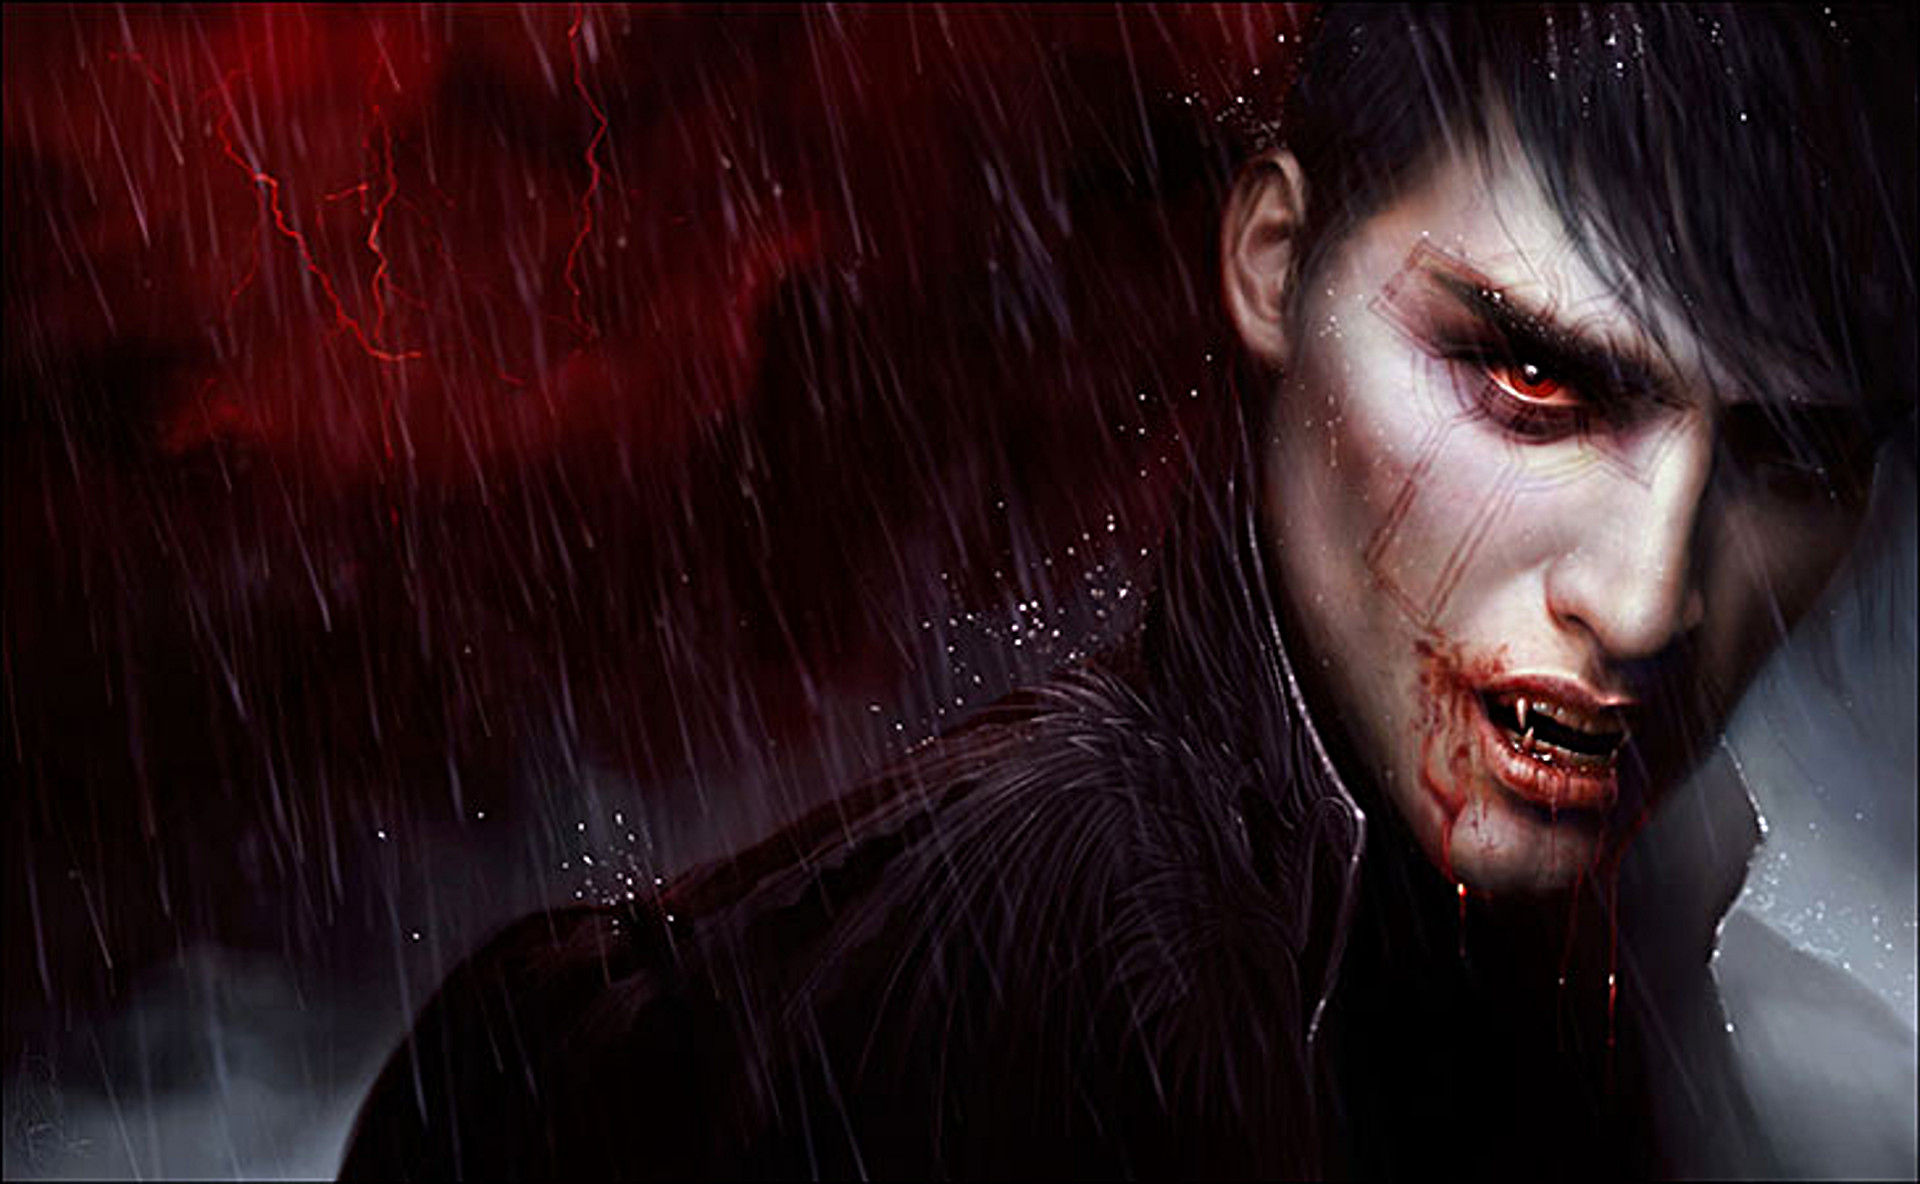 Vampire New Awesome High Quality Wallpapers - All HD ...